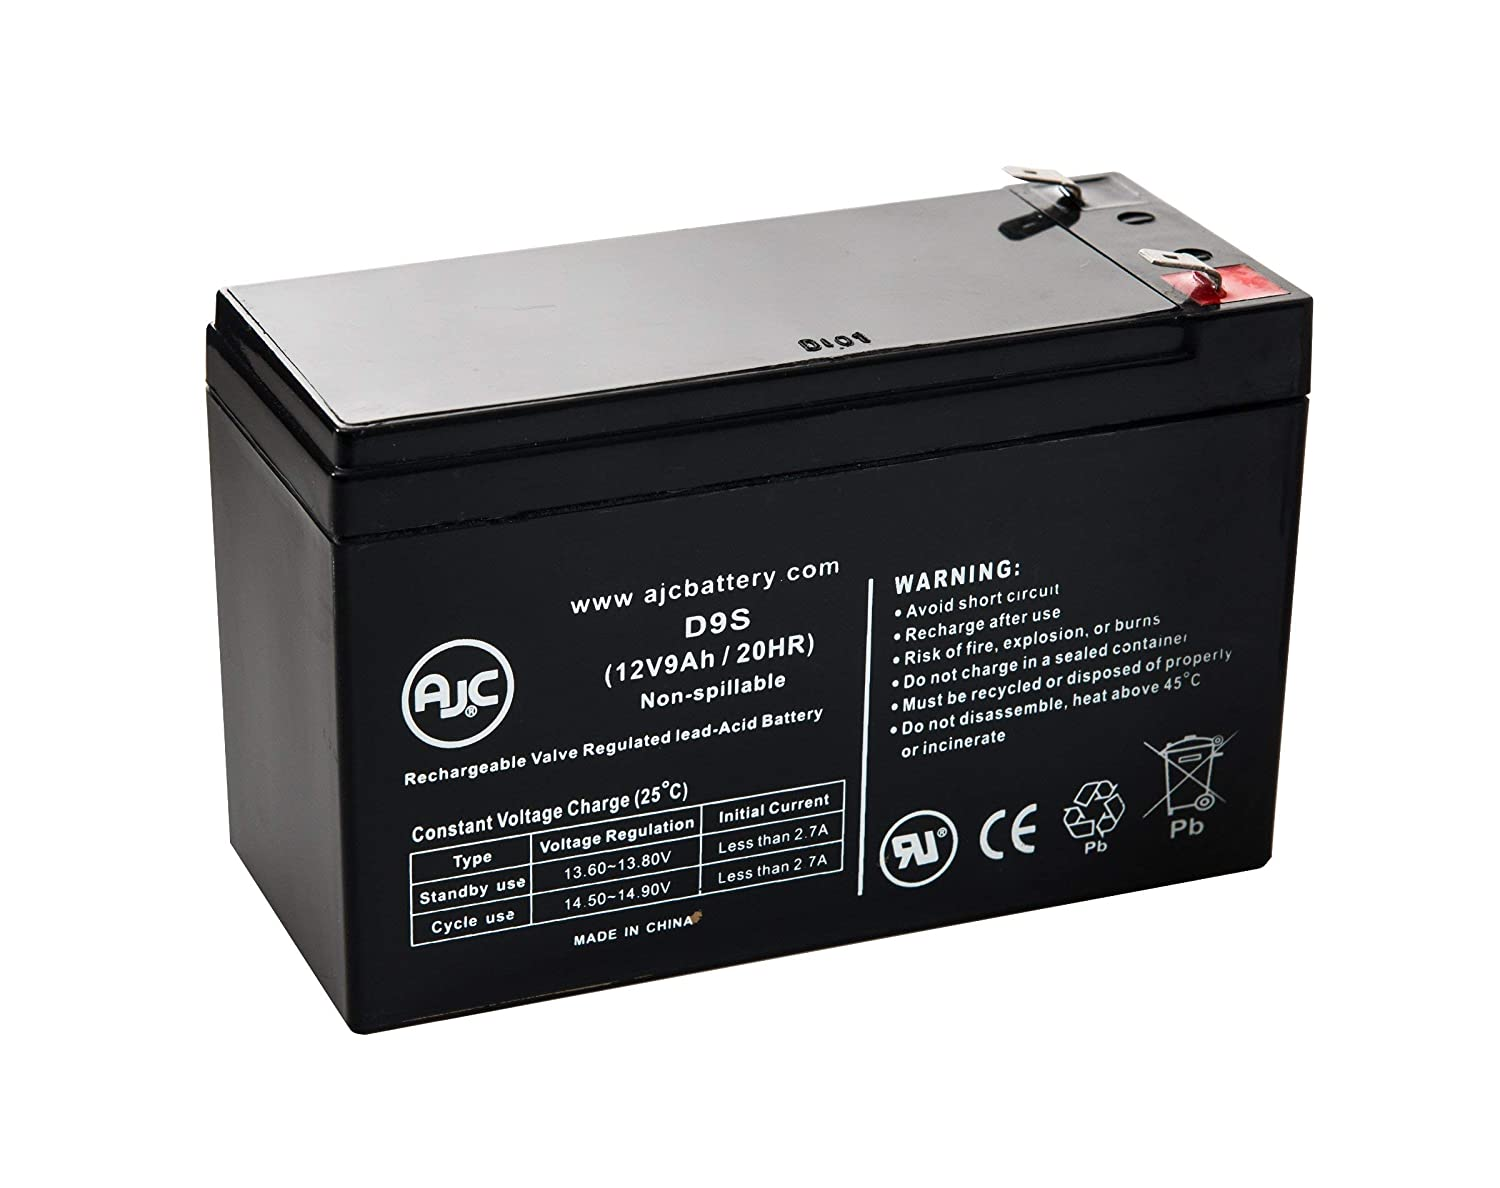 UPG UB1290 12V 9Ah Sealed Lead Acid Battery - This is an AJC Brand Replacement AJC Battery